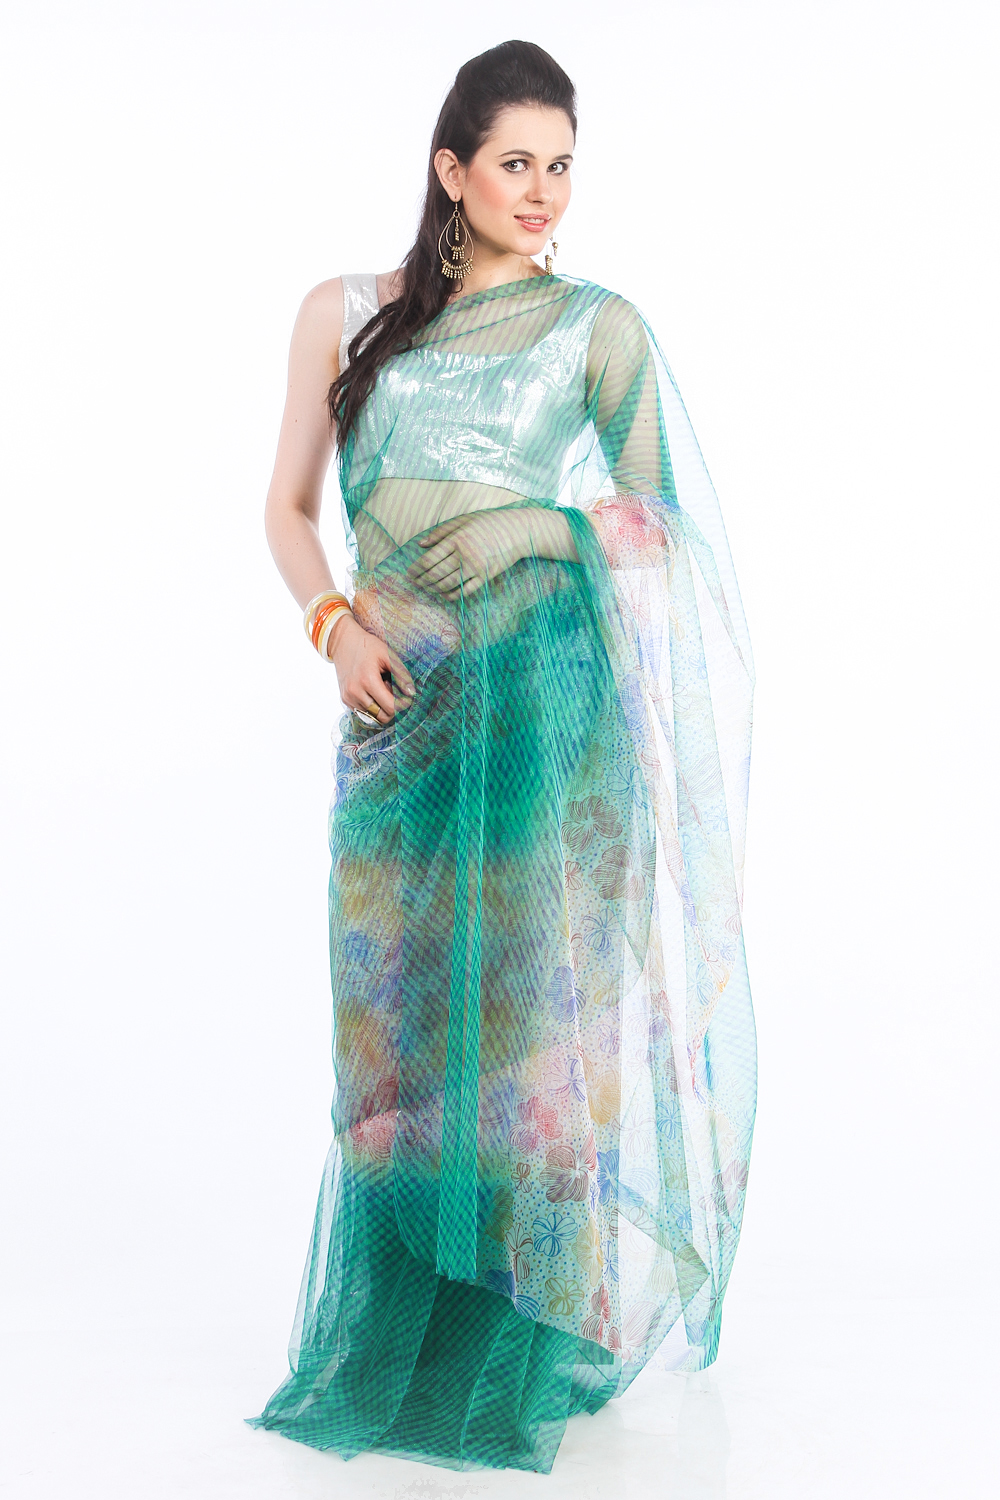 DS Green Net Fabric Floral Print Fashionable Saree